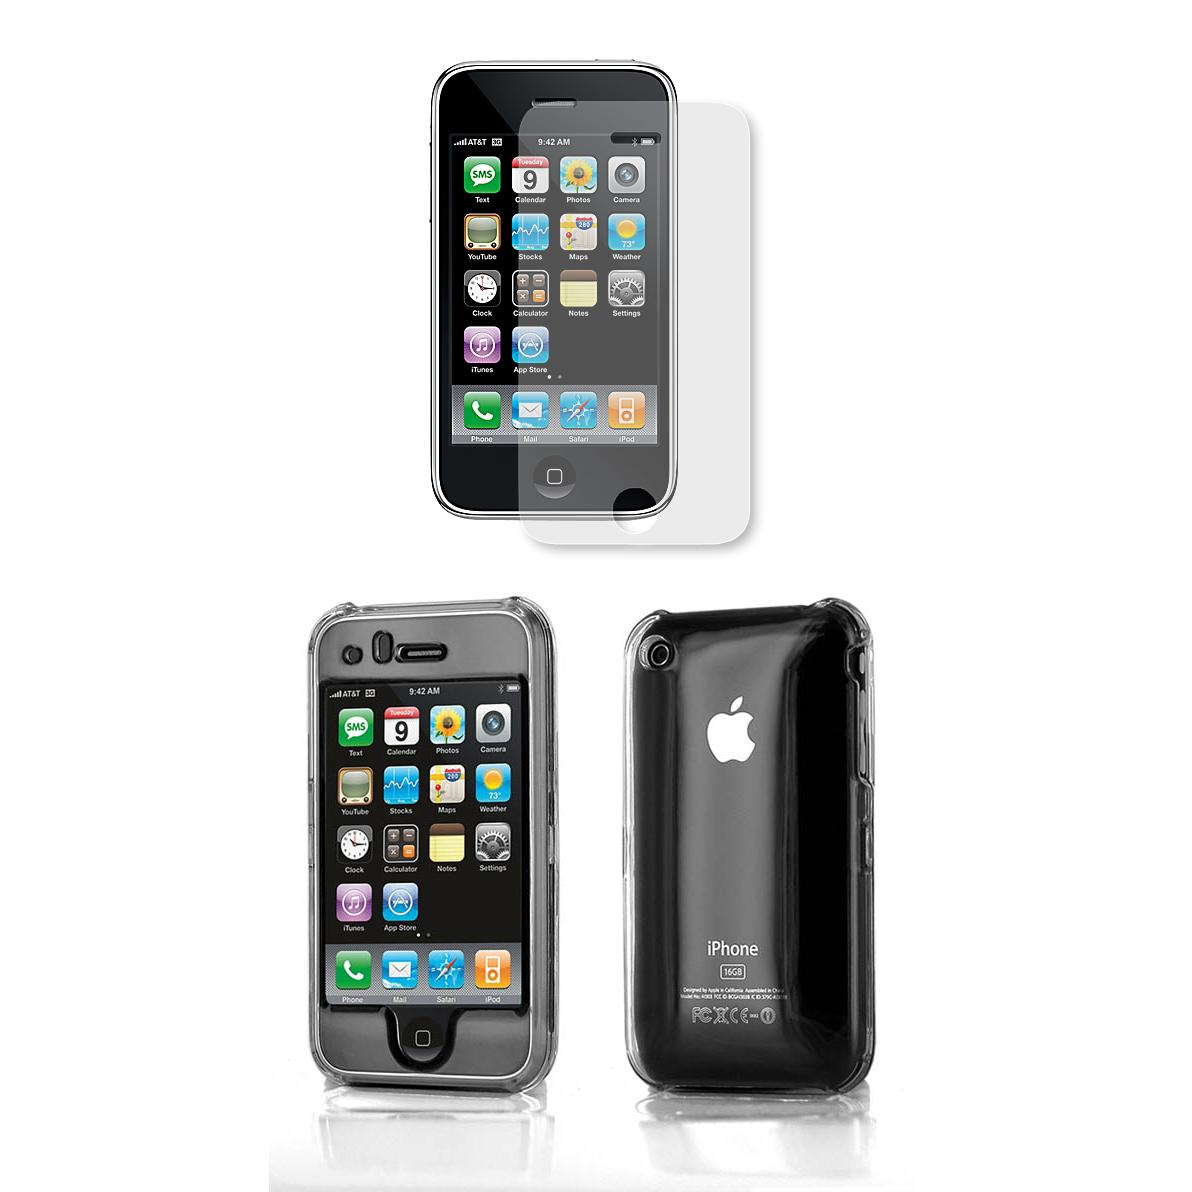 Apple iPhone 3rd Generation Protector Case with Screen ...